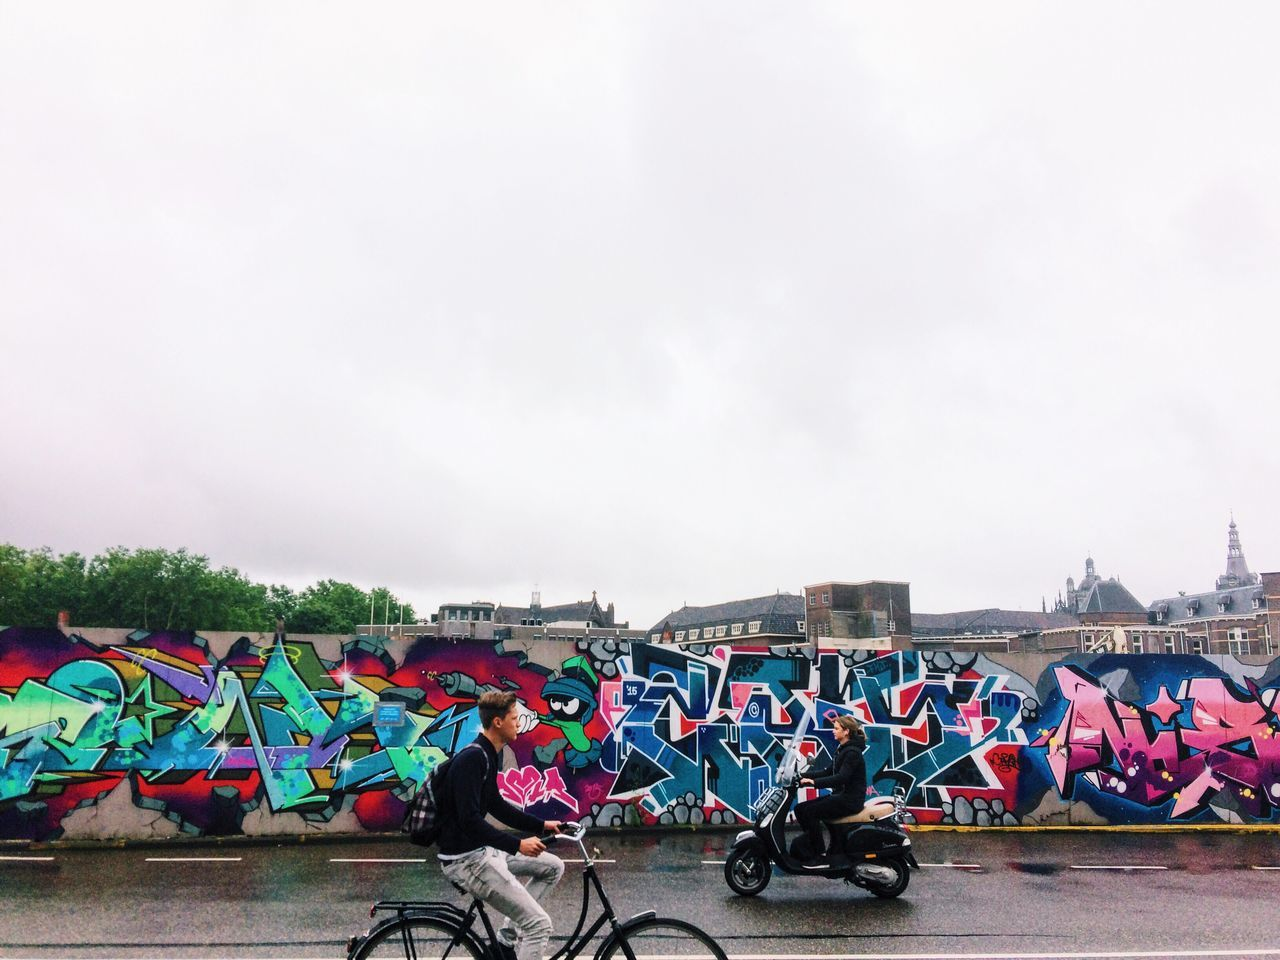 real people, day, mode of transport, outdoors, men, large group of people, transportation, sky, multi colored, people